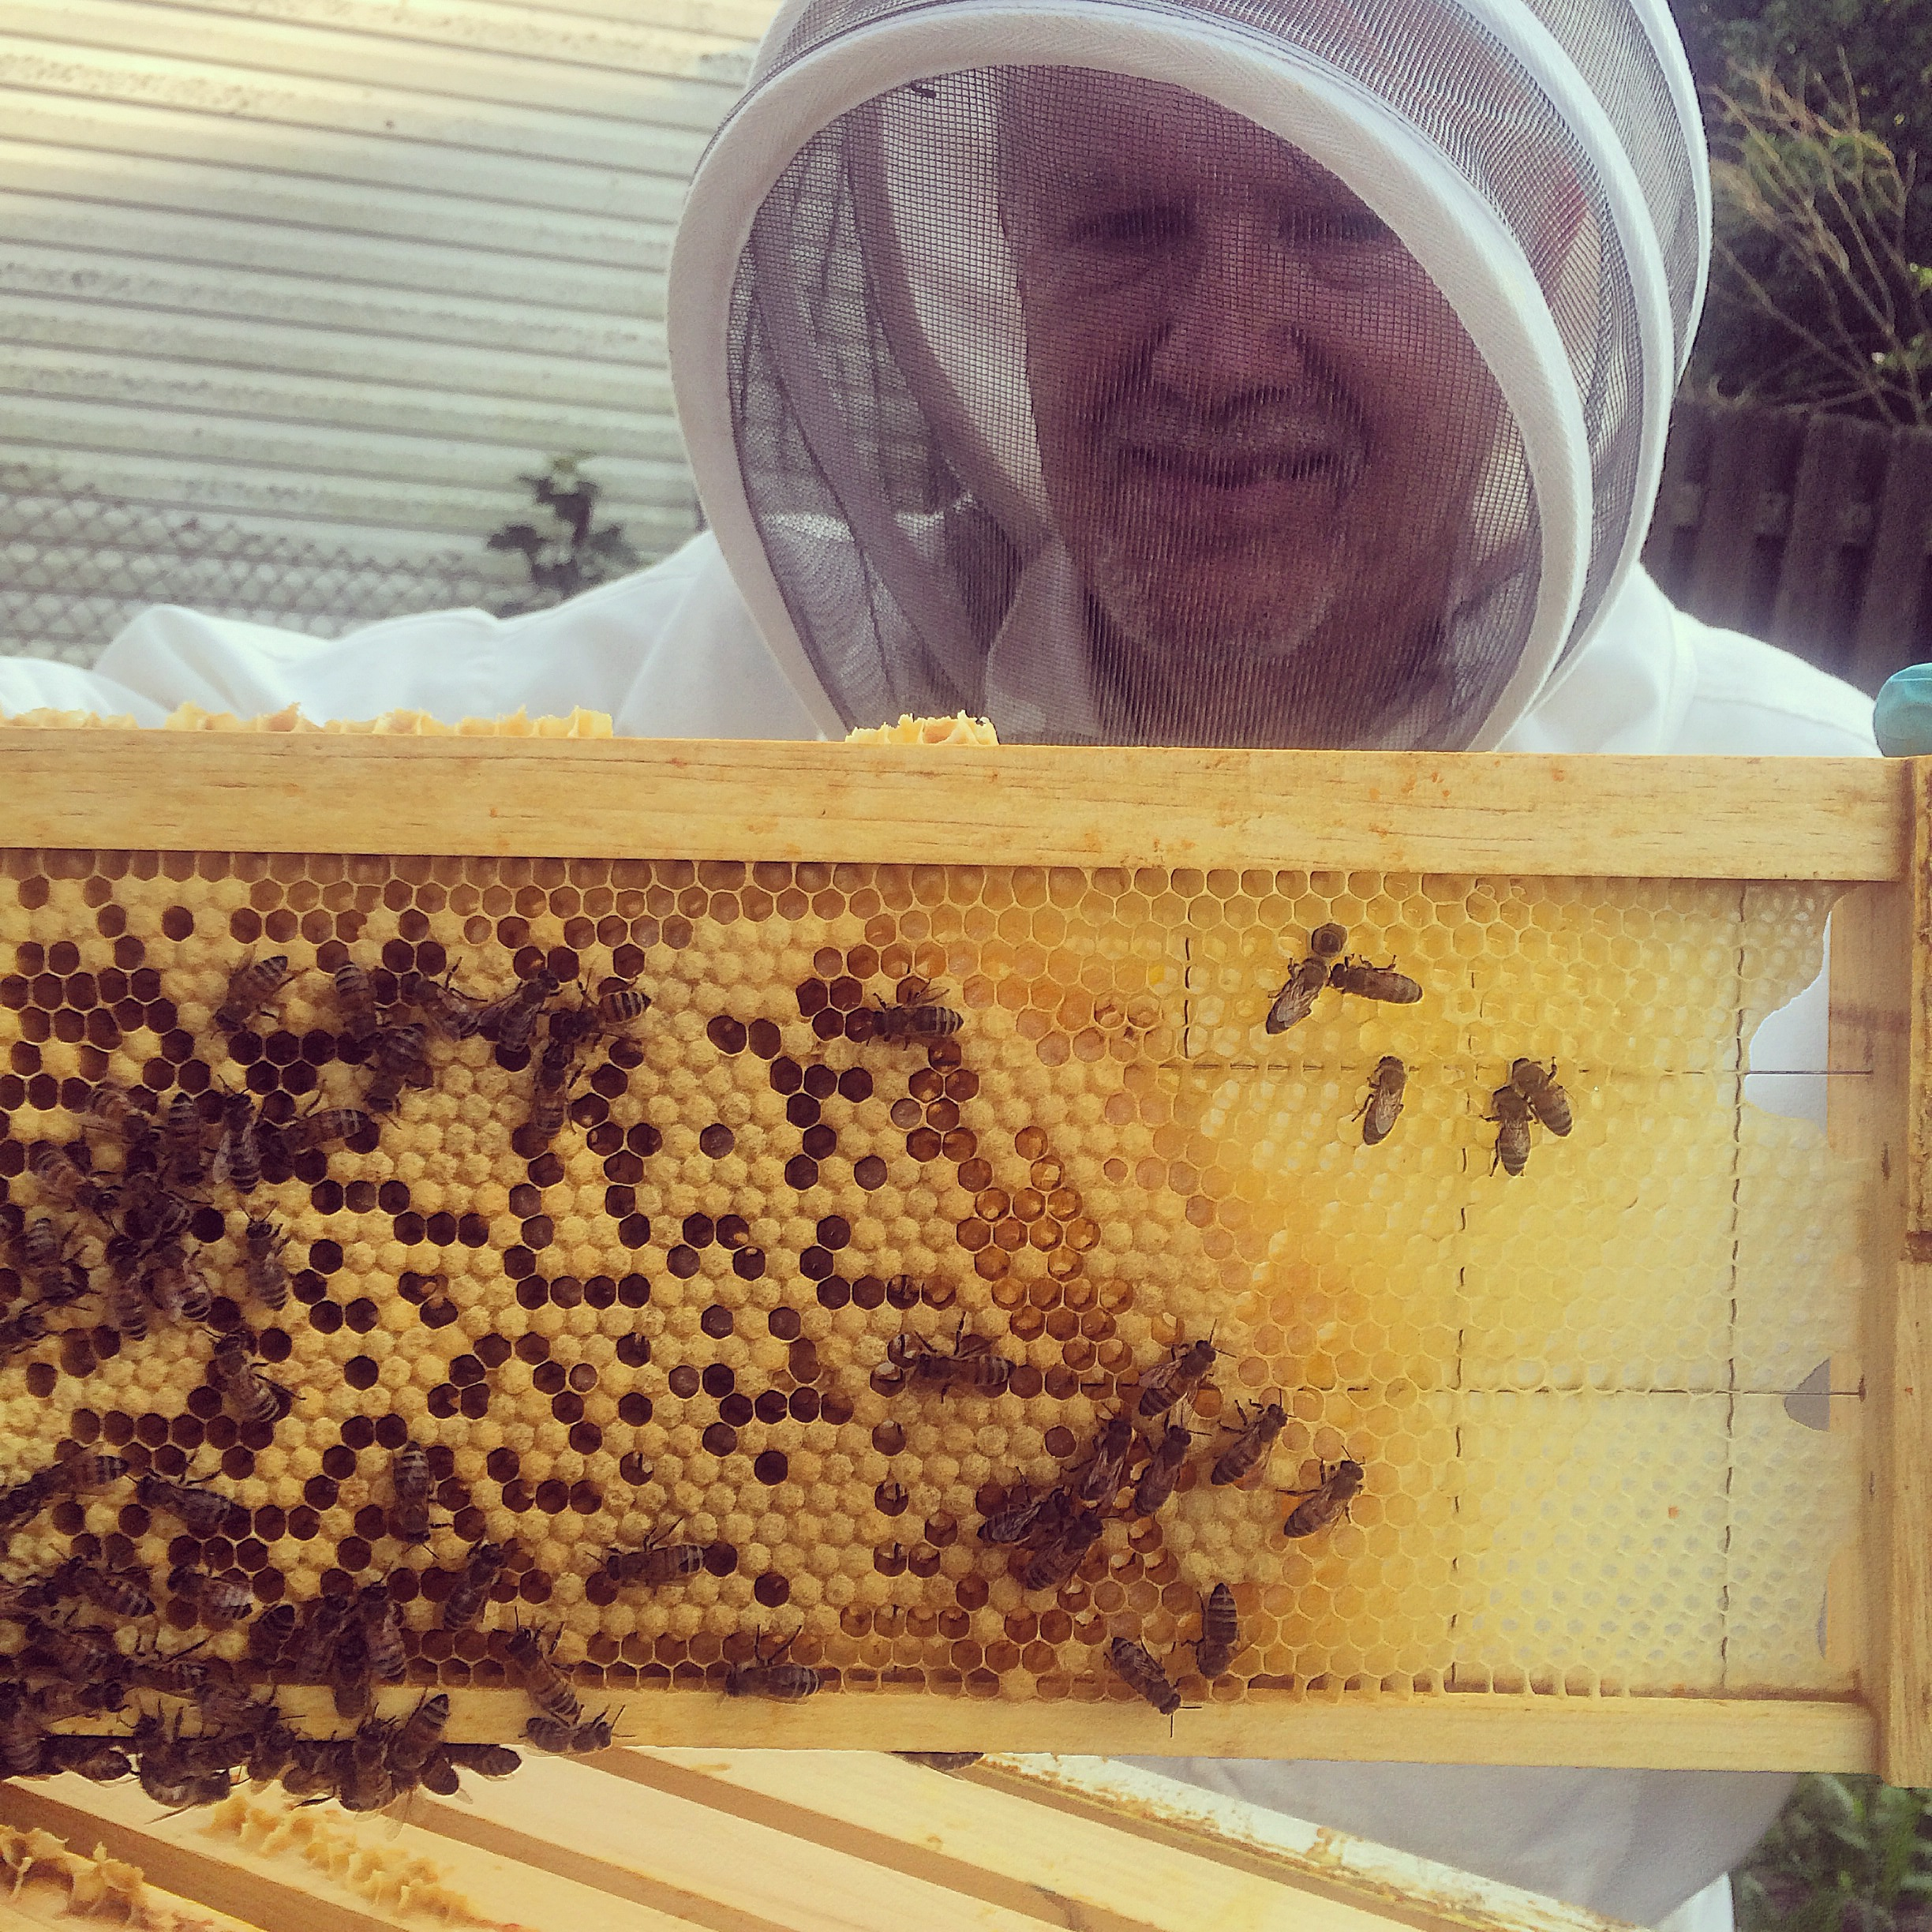 The Chief Bee Wrangler